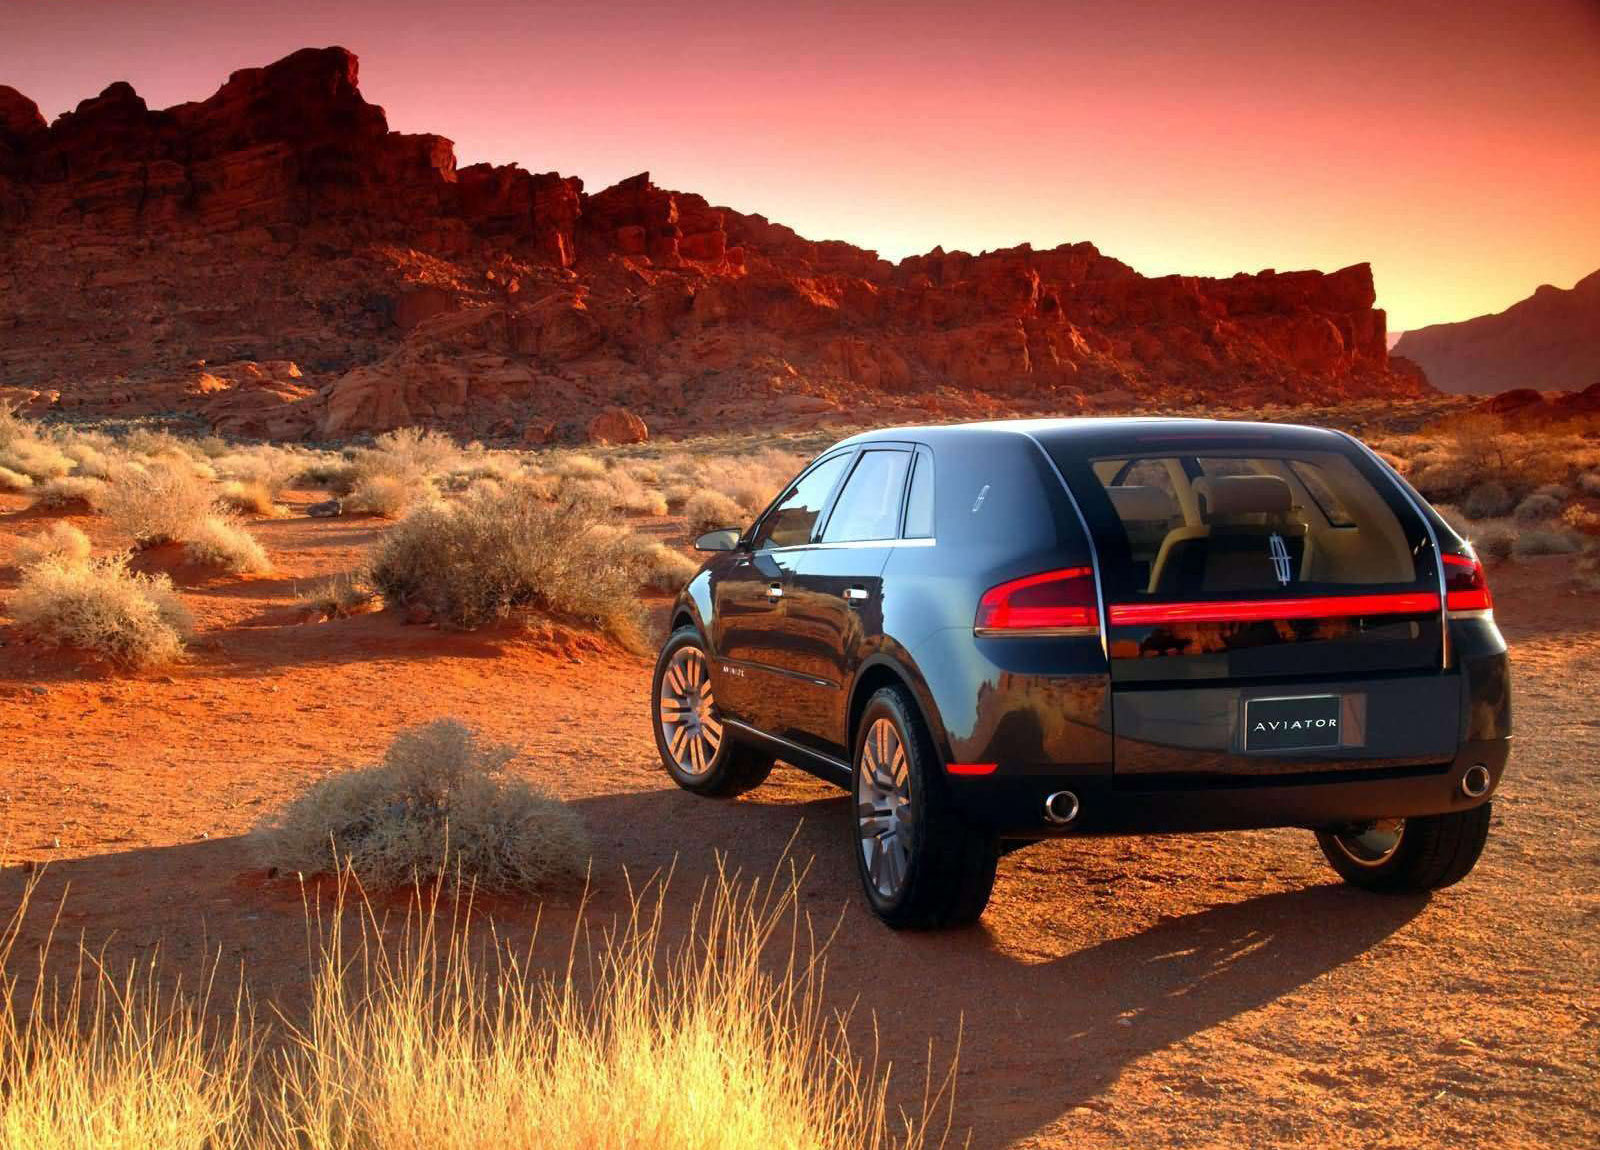 https://www.carsinvasion.com/gallery/2004-lincoln-aviator-concept/2004-lincoln-aviator-concept-07.jpg